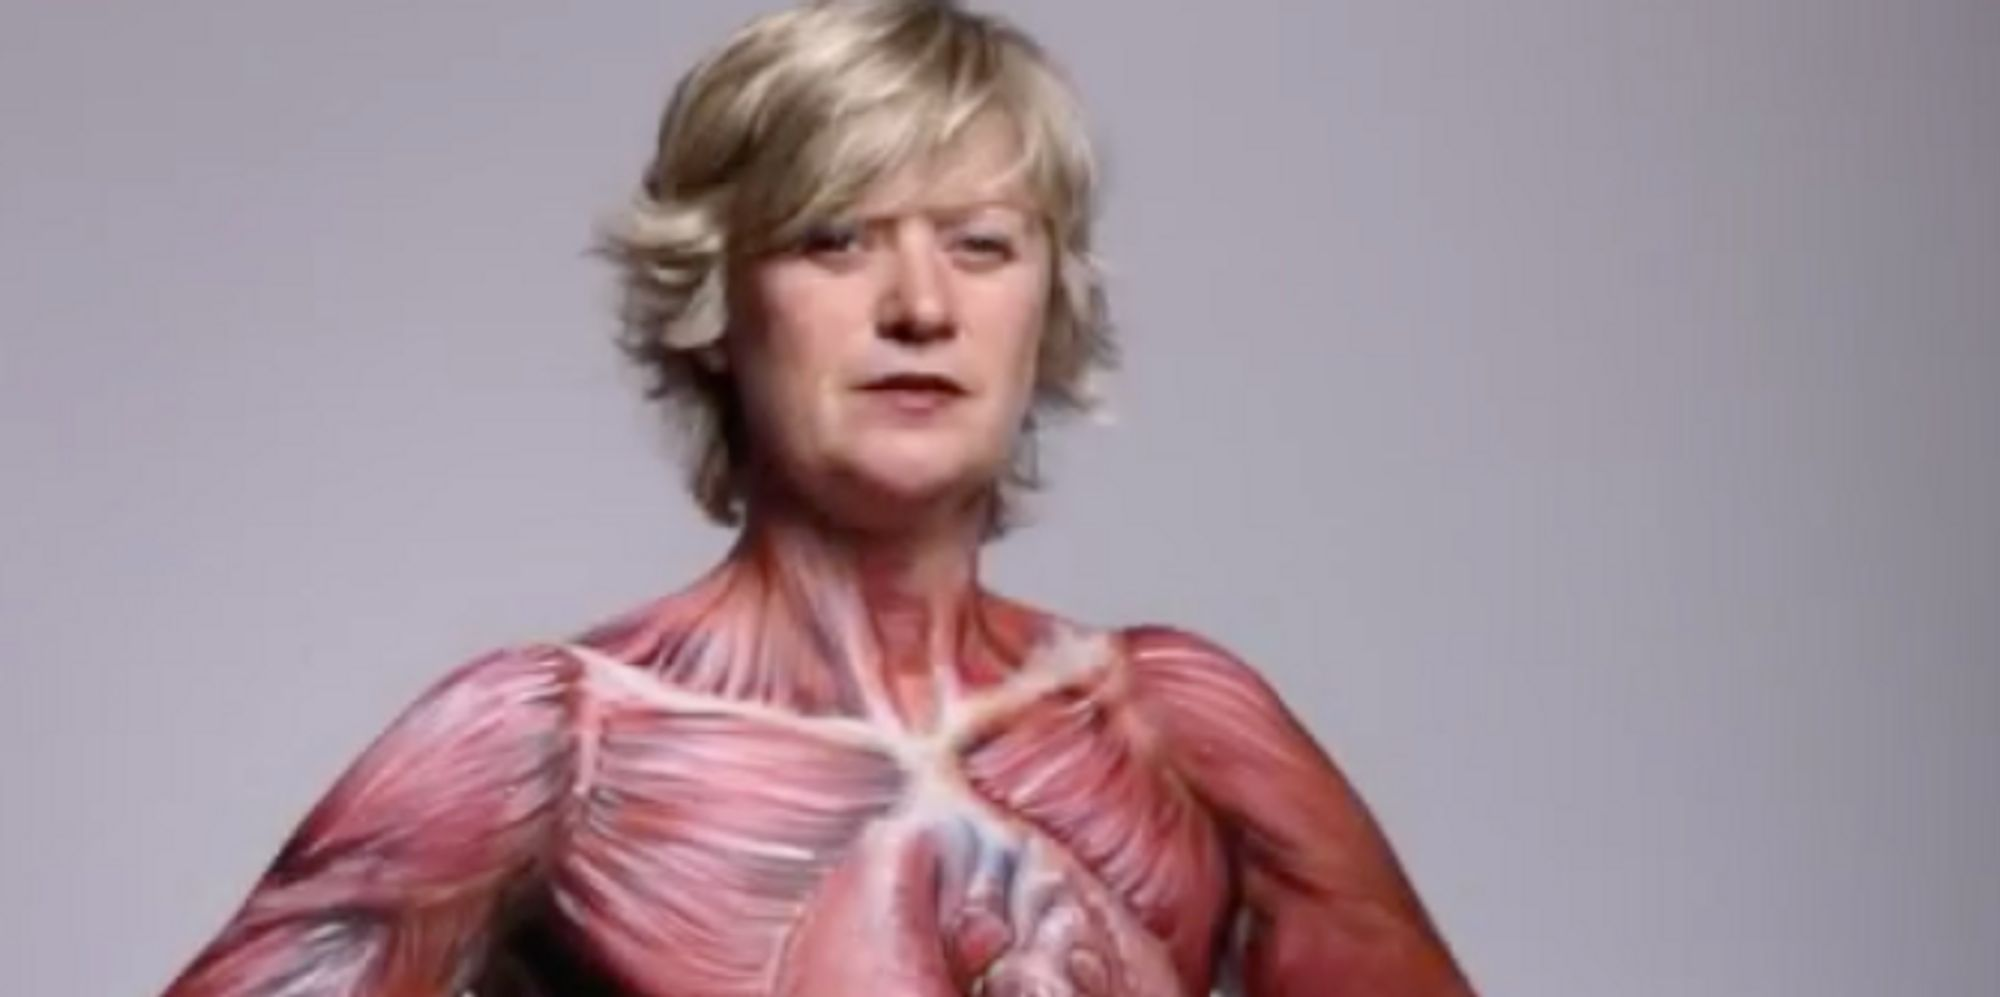 Quadruple Amputee Poses Nude To Encourage More Organ Donations  Huffpost Uk-8971